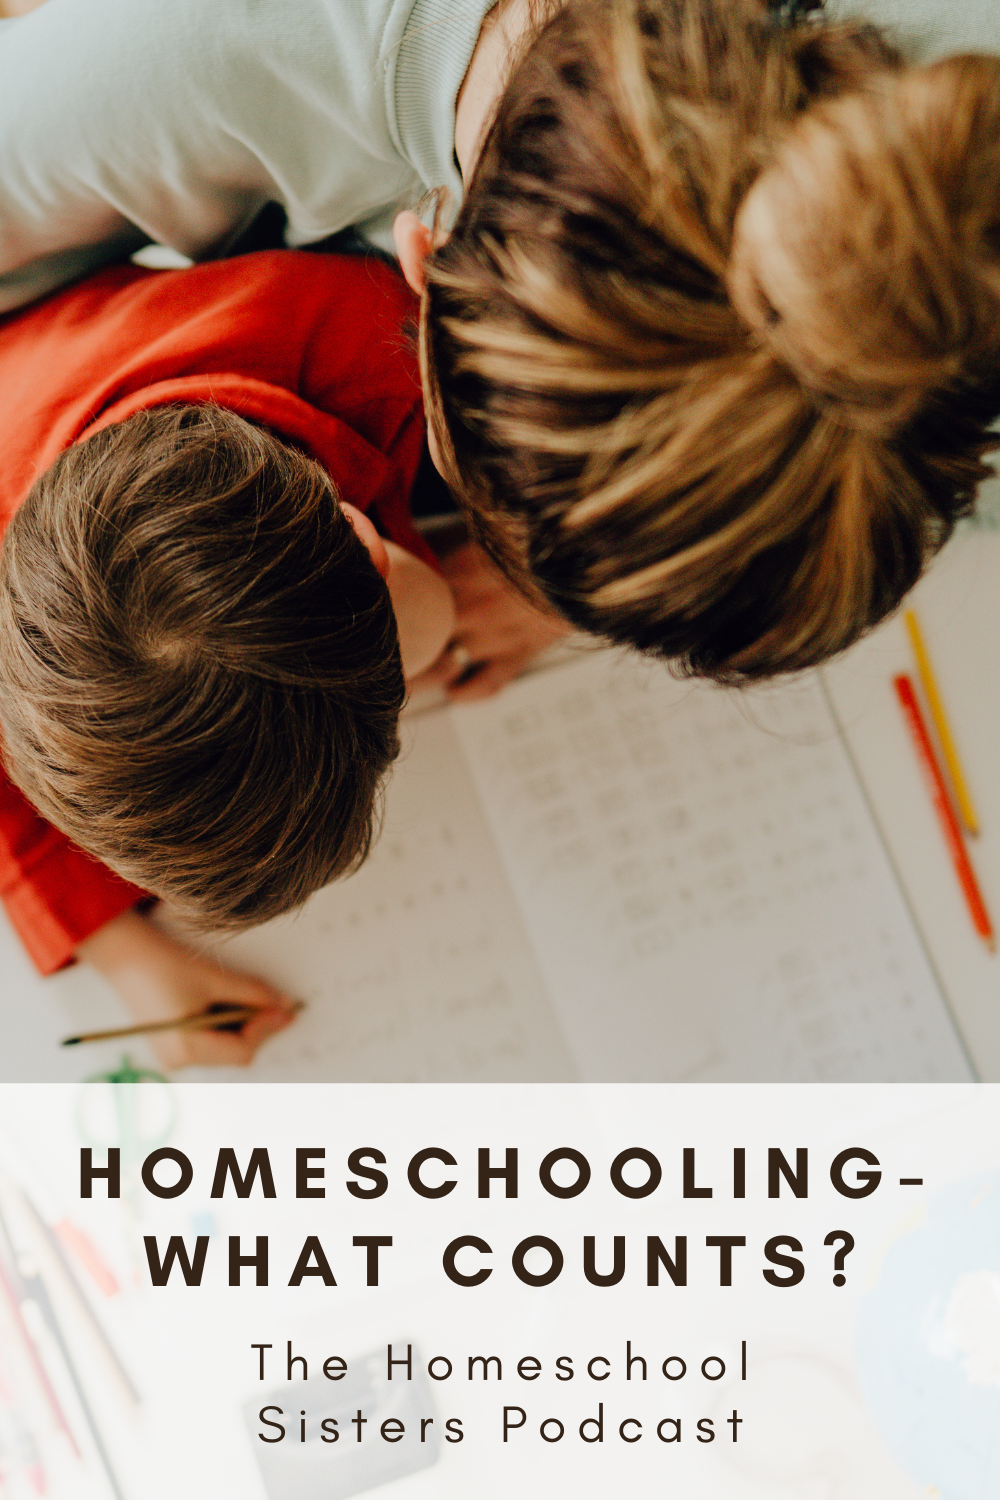 Homeschooling - What Counts? [Episode 109] | The Homeschool Sisters Podcast